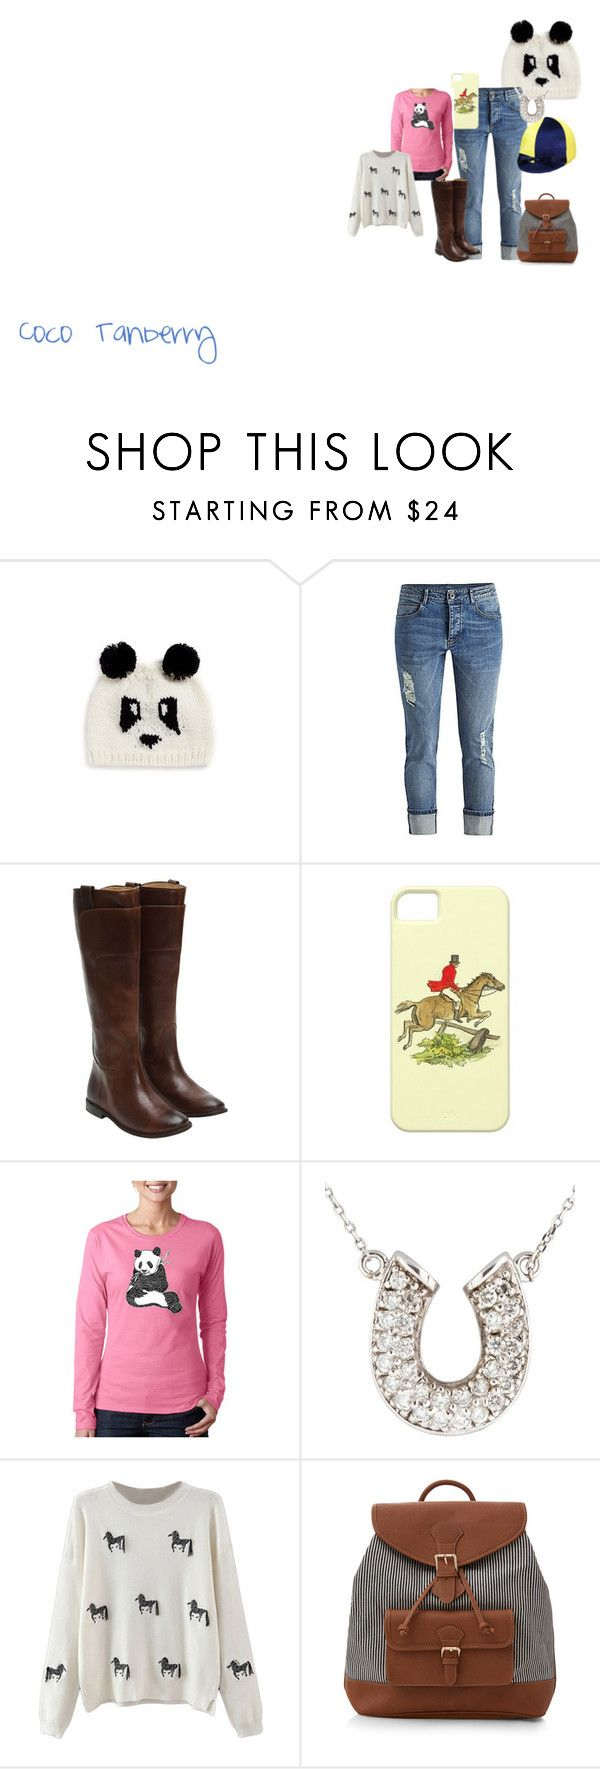 """""""Coco Tanberry"""" by ravenwolf123 ❤ liked on Polyvore featuring Blueberry Hill, Frye, Los Angeles Pop Art, Accessorize, women's clothing, women, female, woman, misses and juniors"""